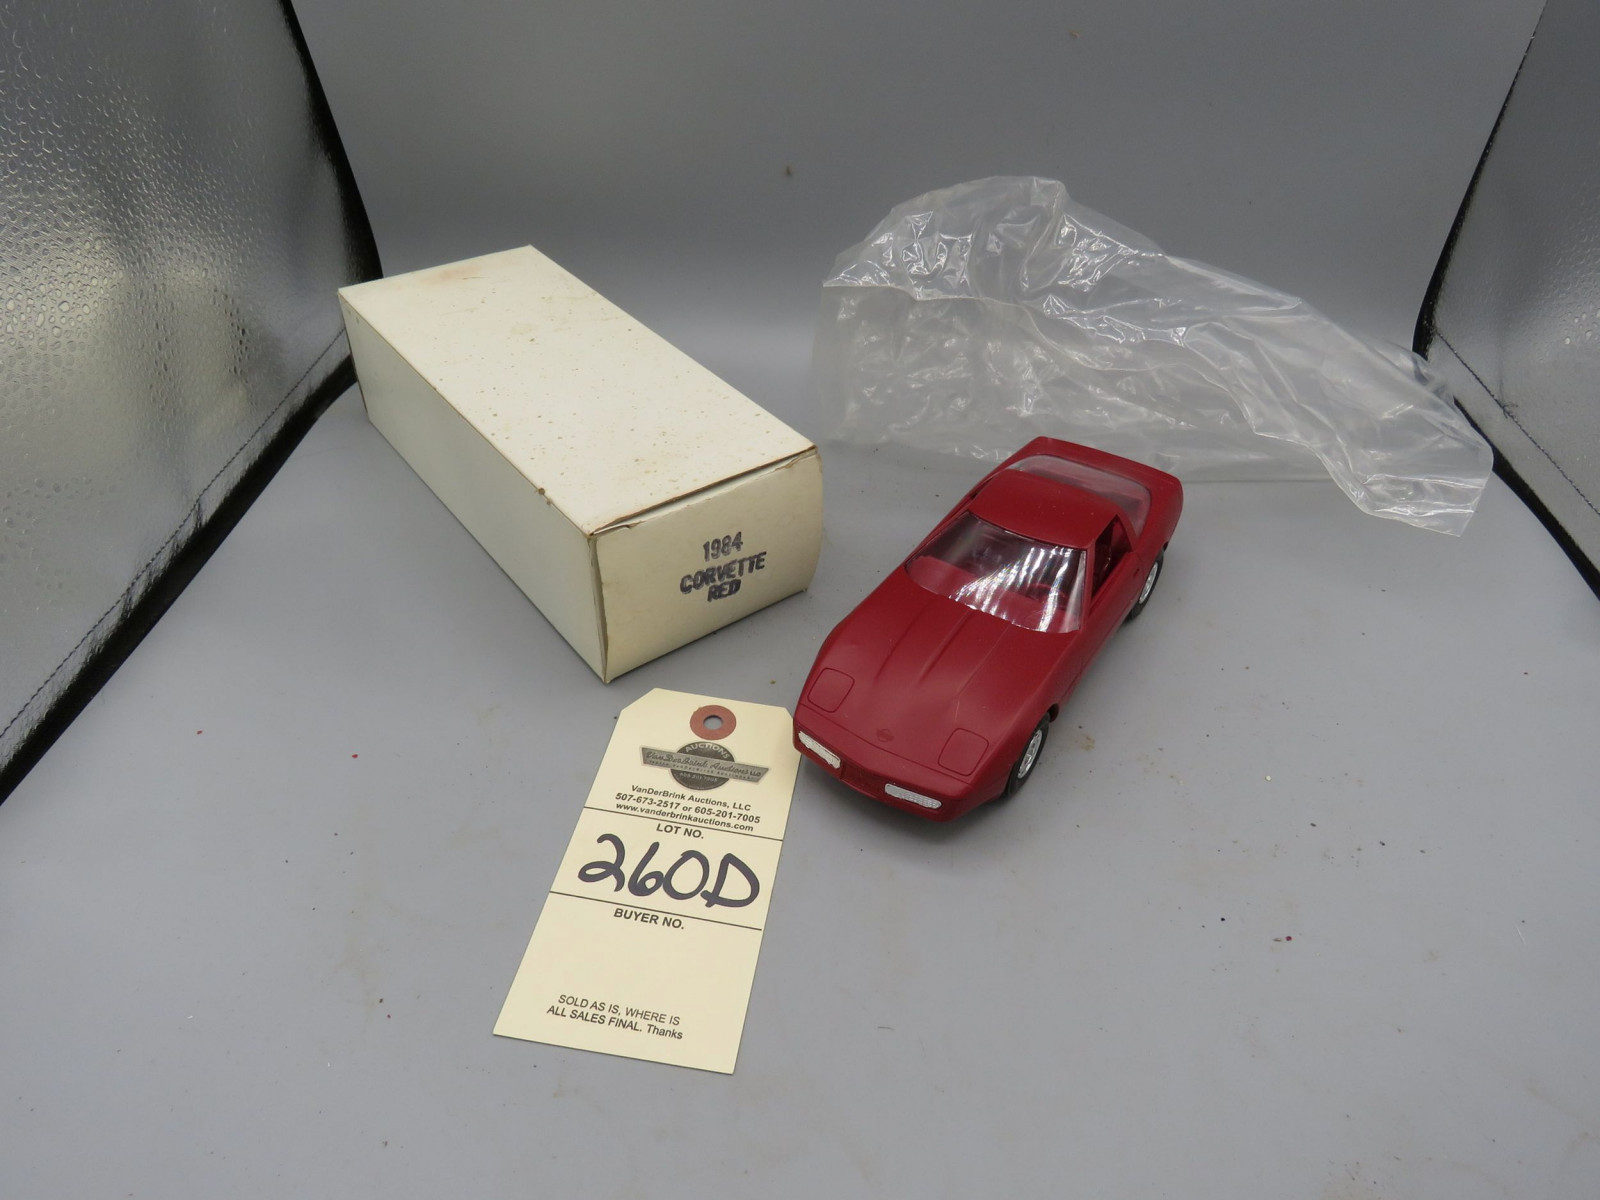 1984 Chevrolet Corvette Promotional Model NIB Plastic - Image 1